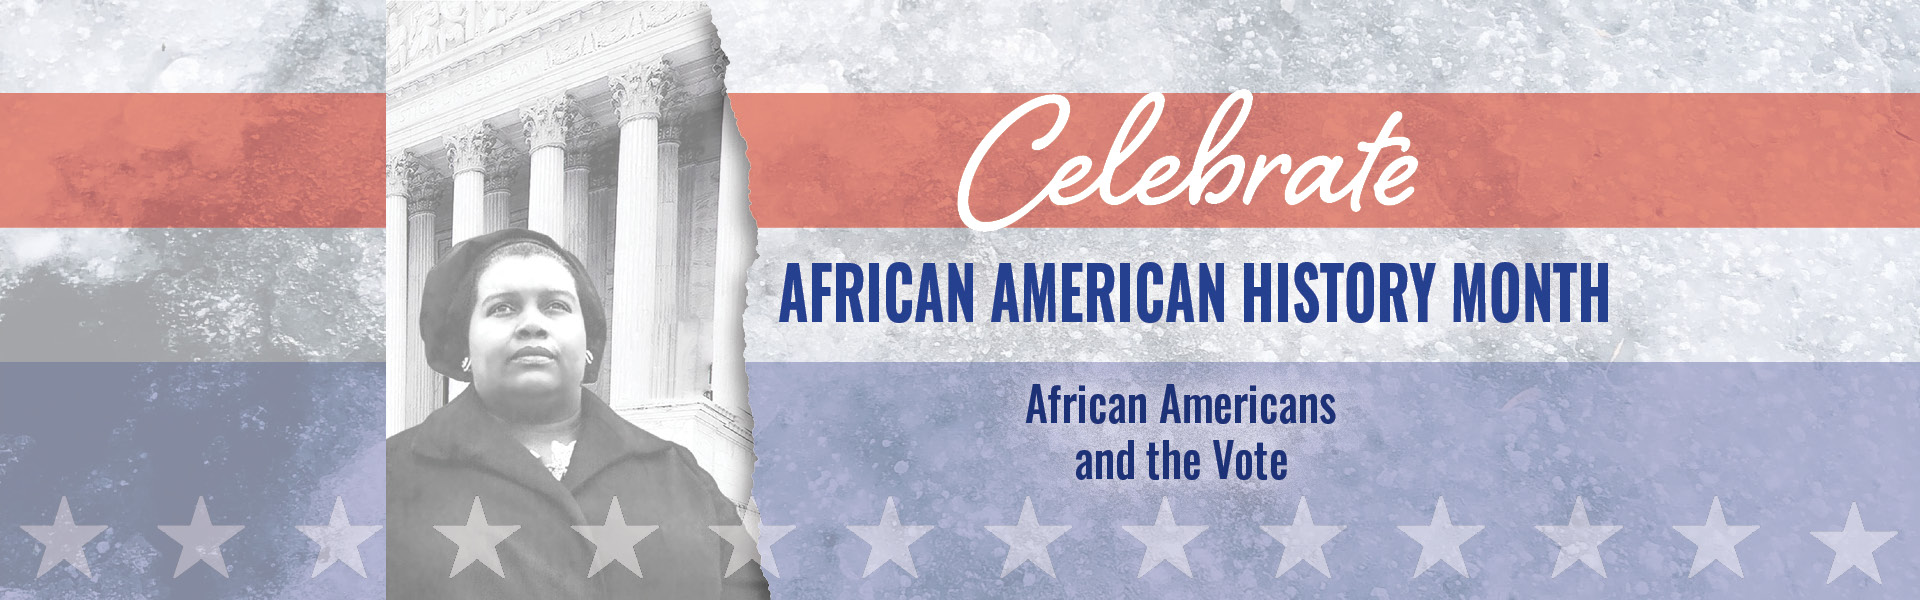 African American History Month. African Americans and the Right to Vote. February 2020. Image: Evelynn Butts